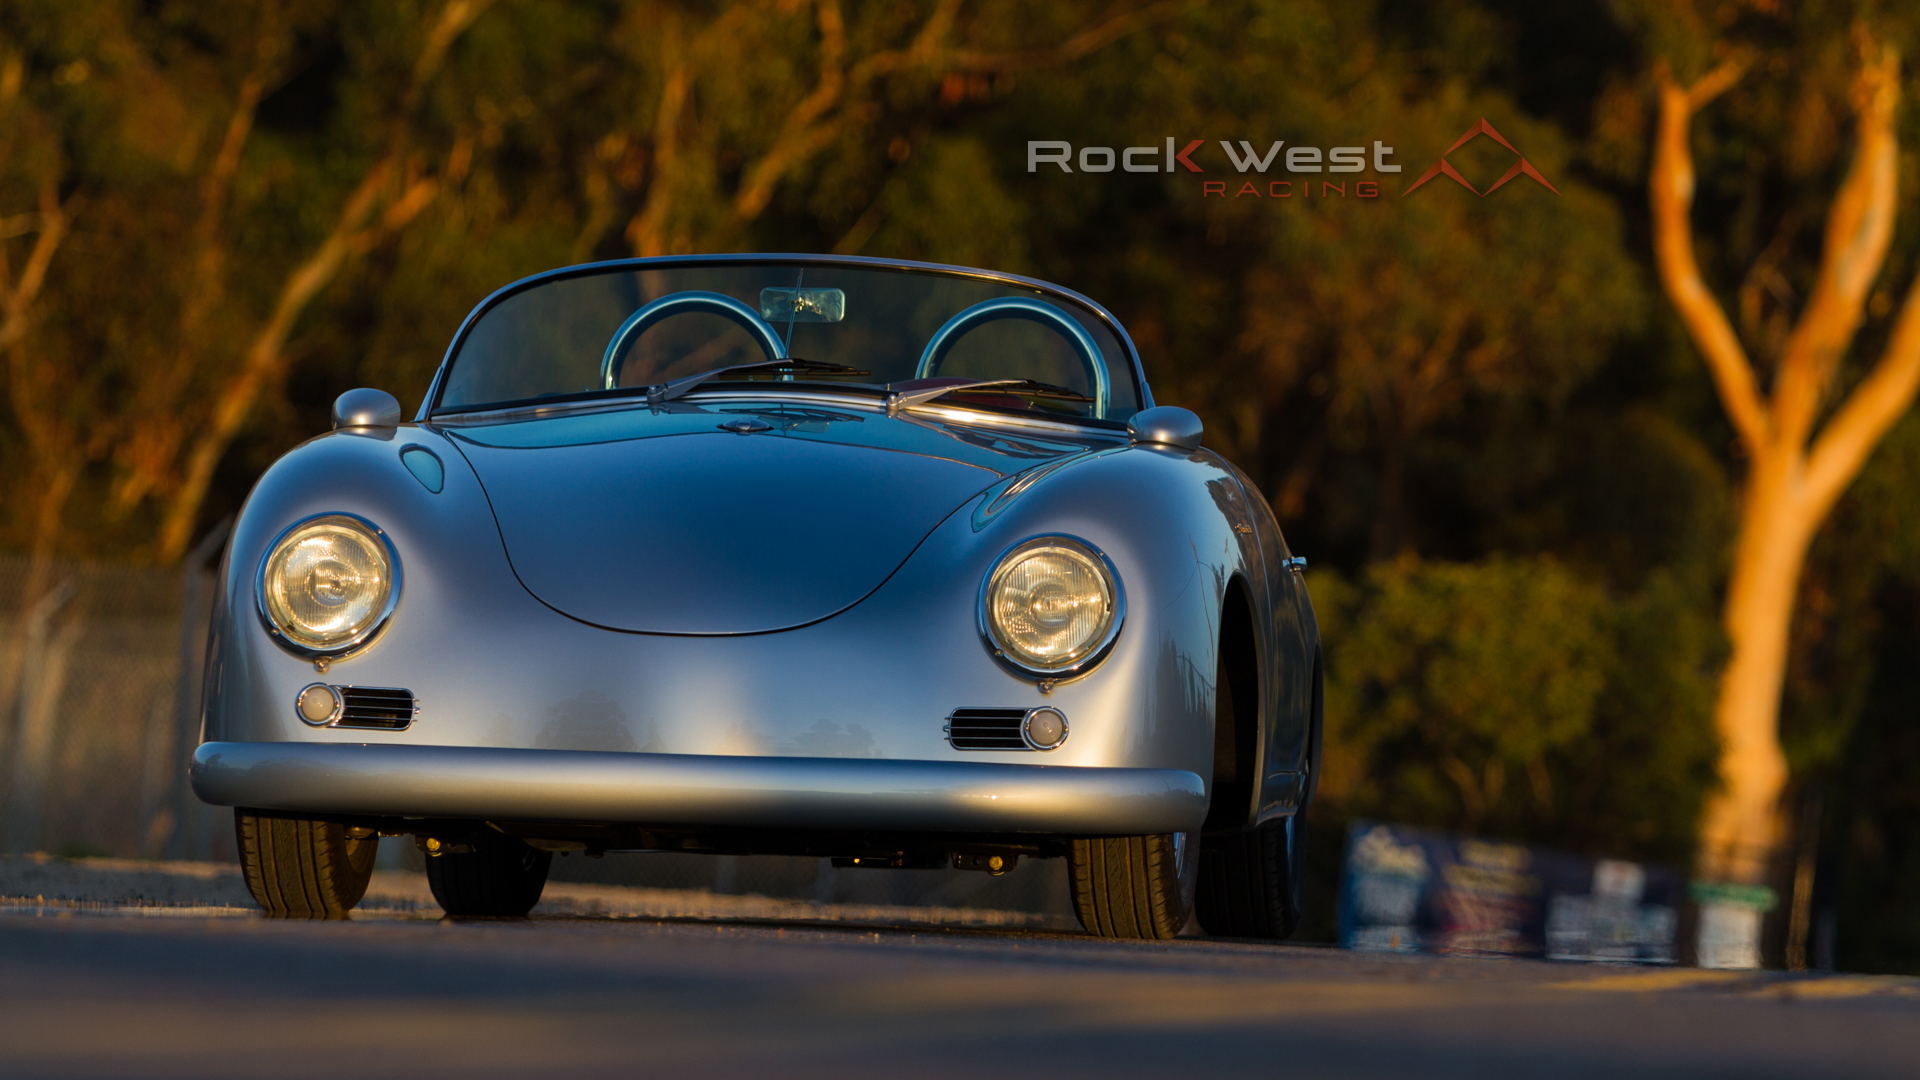 RW Speedster - Lazy Afternoon (1920 x 1080 pixels)